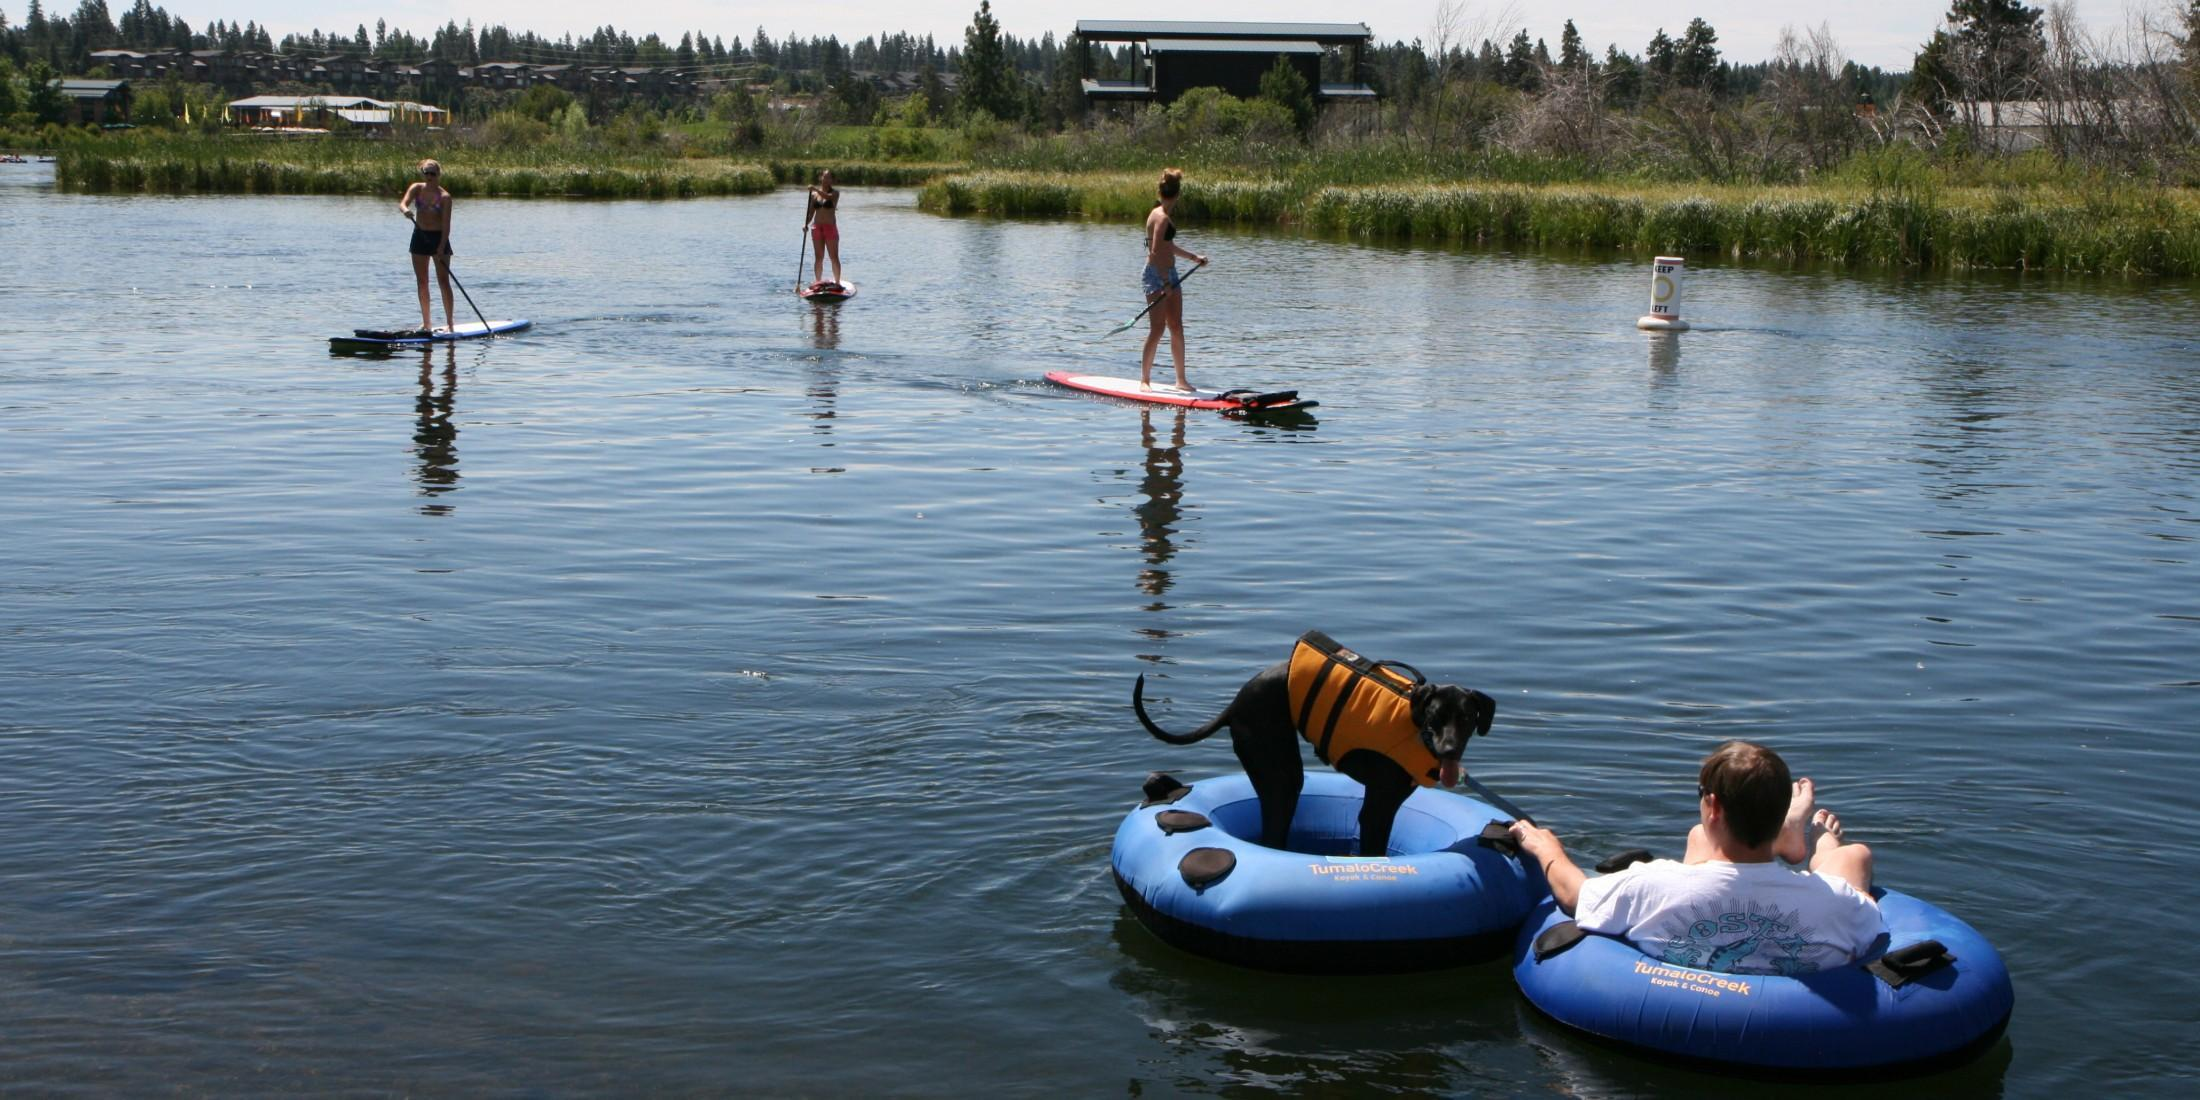 Take your dog on a pet-friendly tubing adventure.